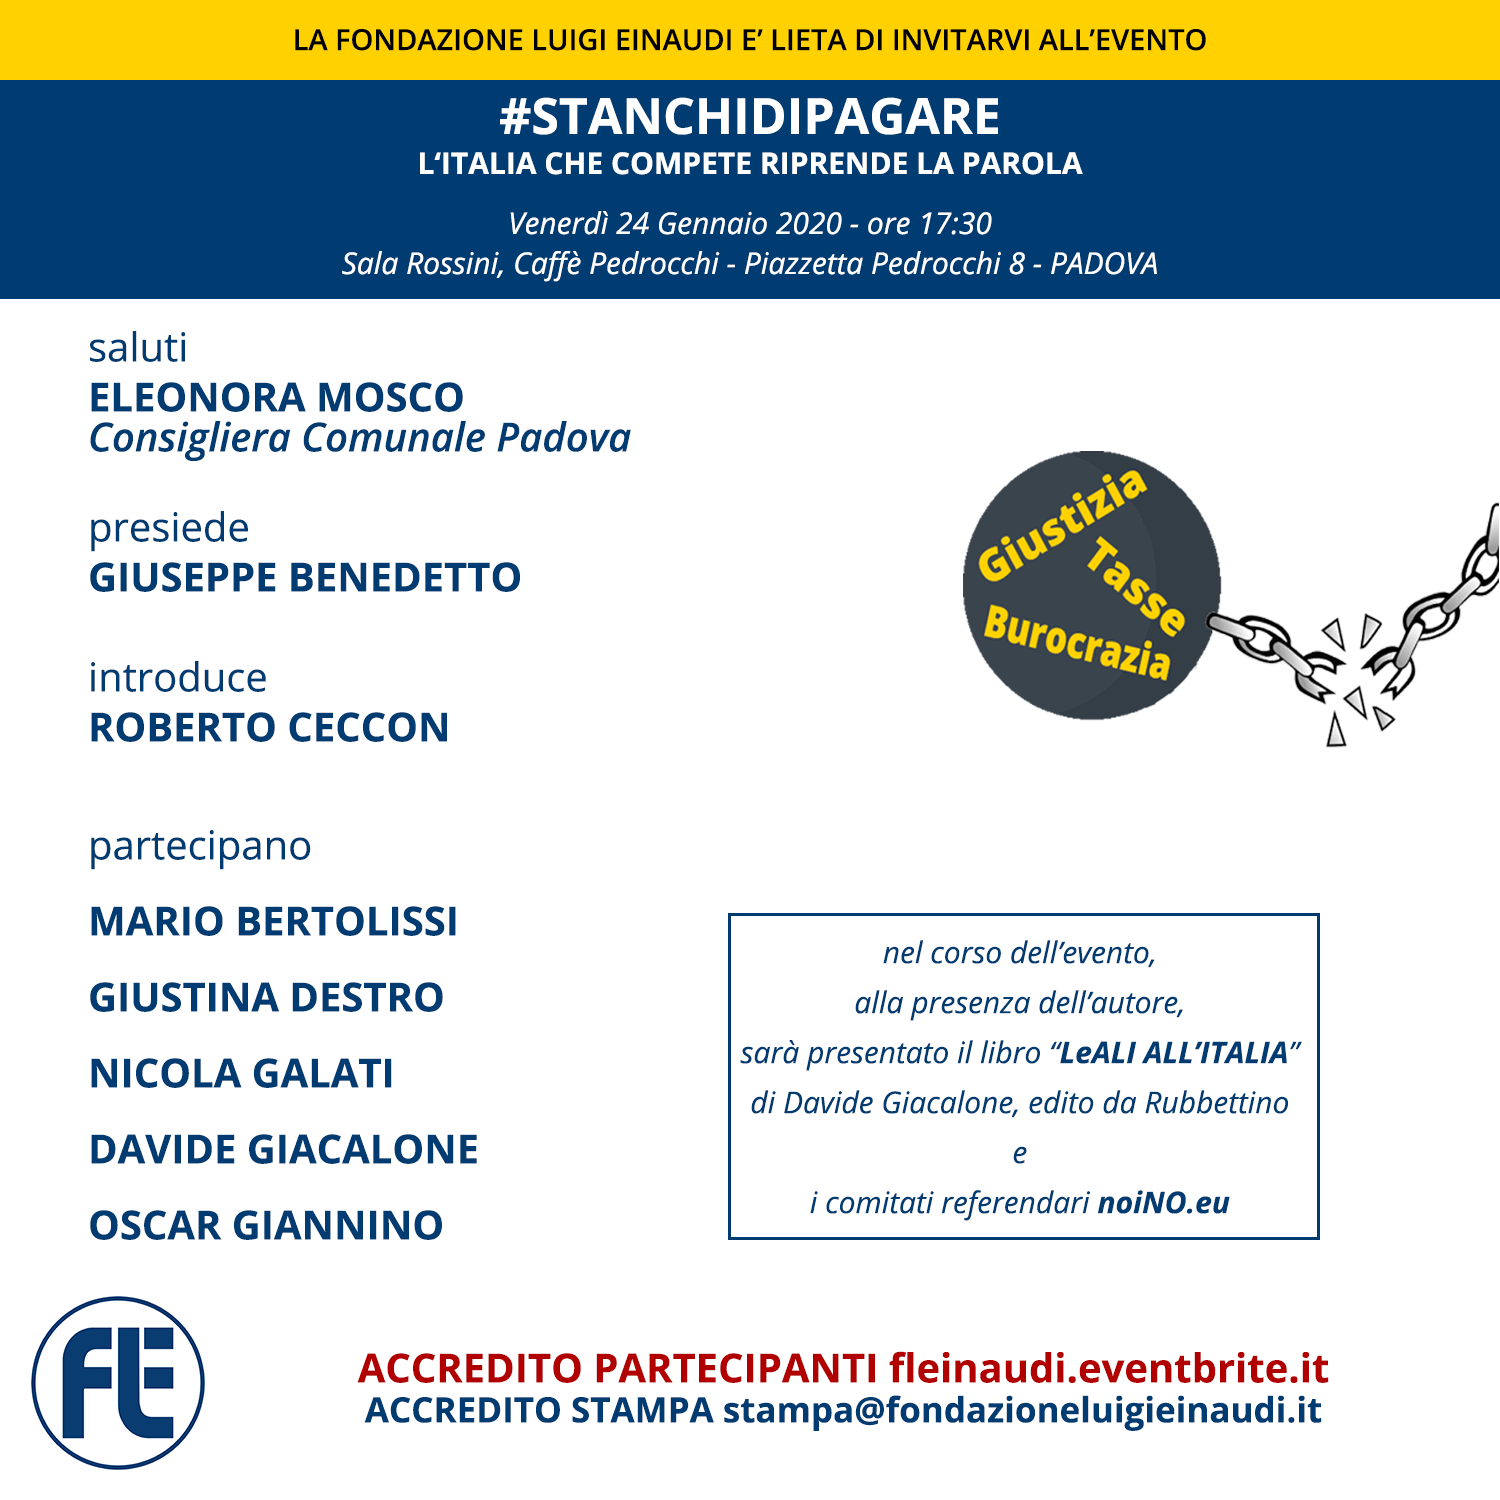 #STANCHIDIPAGARE – Competent Italy take the floor – PADUA